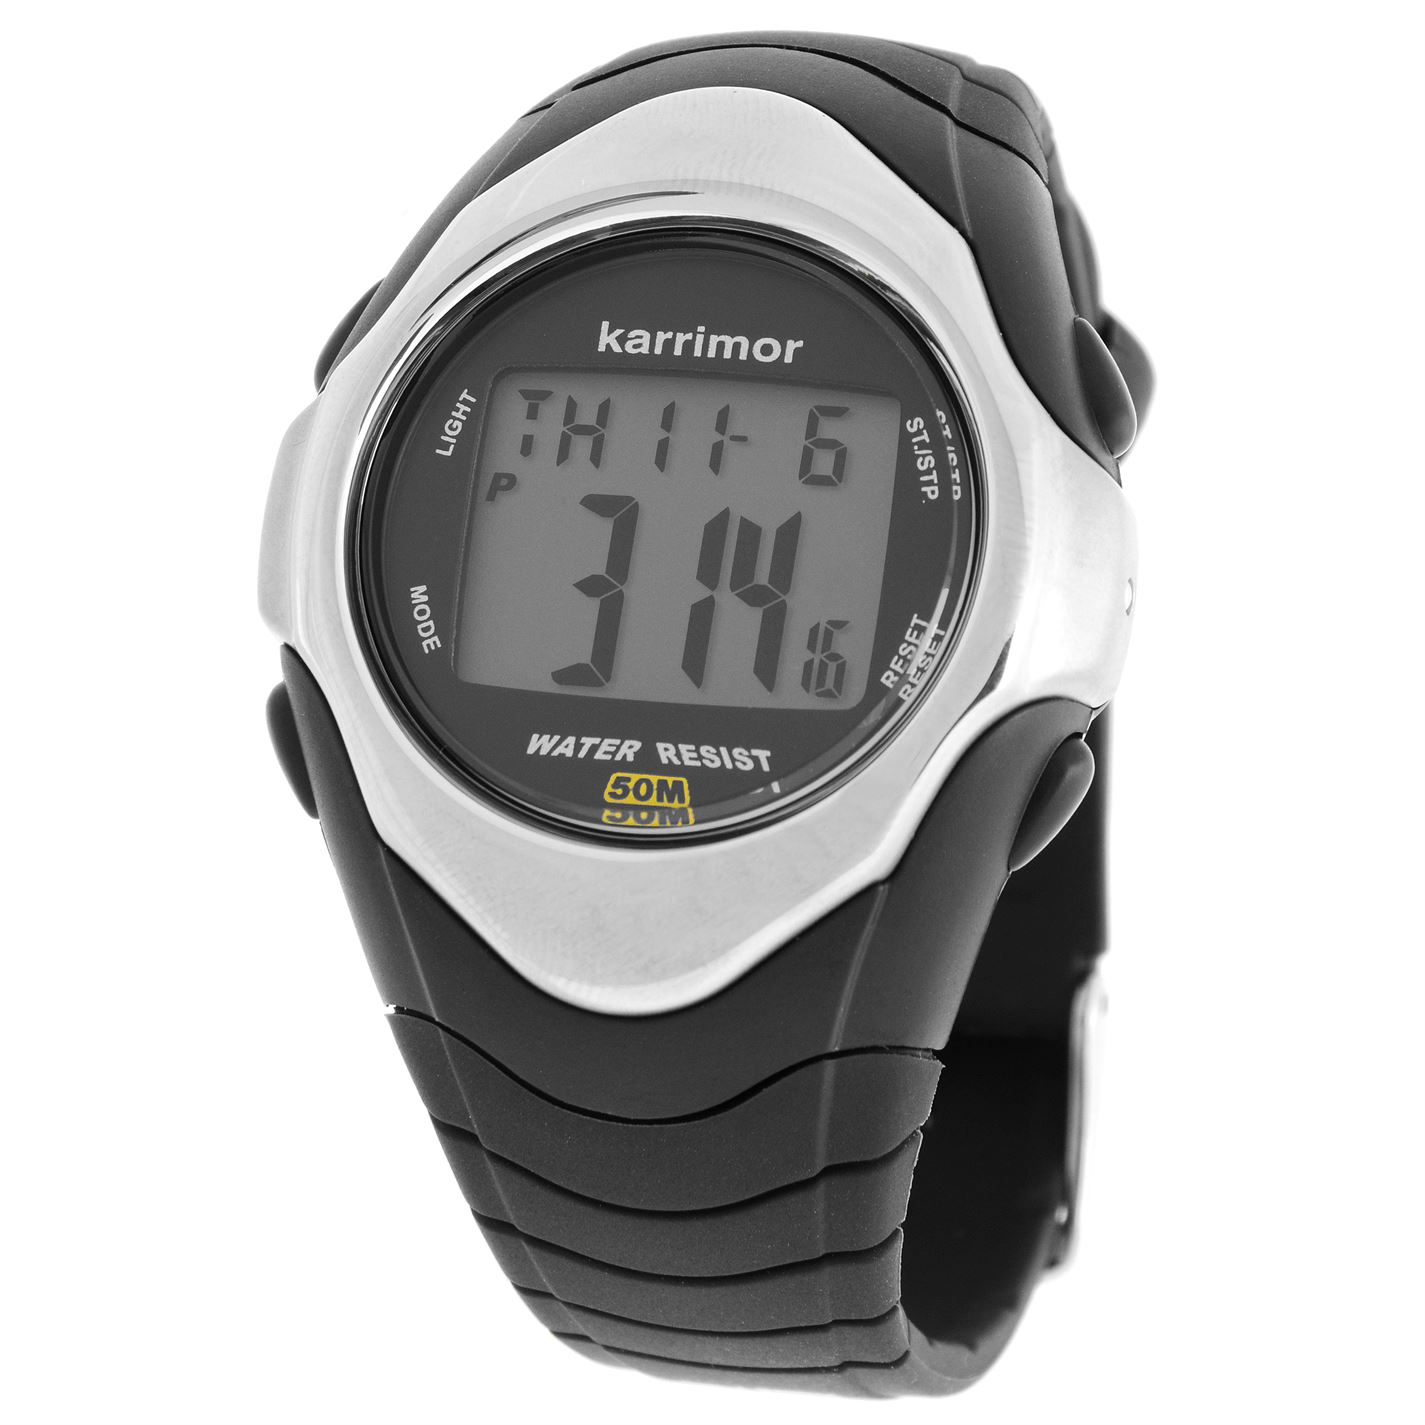 ae home linedup multisport nix full sapphire f garmin rate new en introduces news watches size three